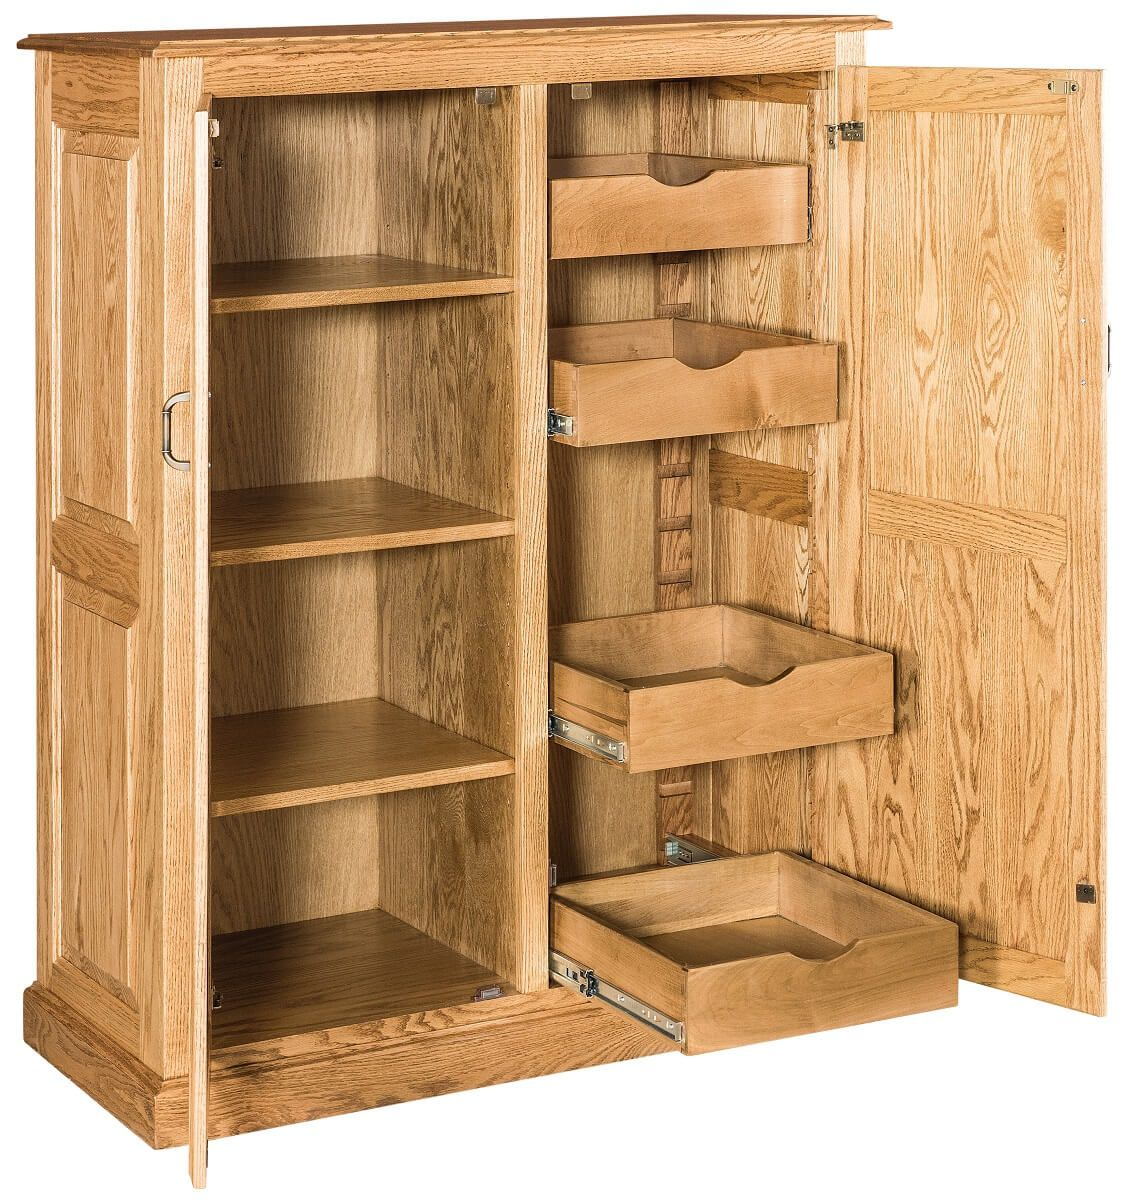 Oak Kitchen Pantry with Roll-Out Shelves